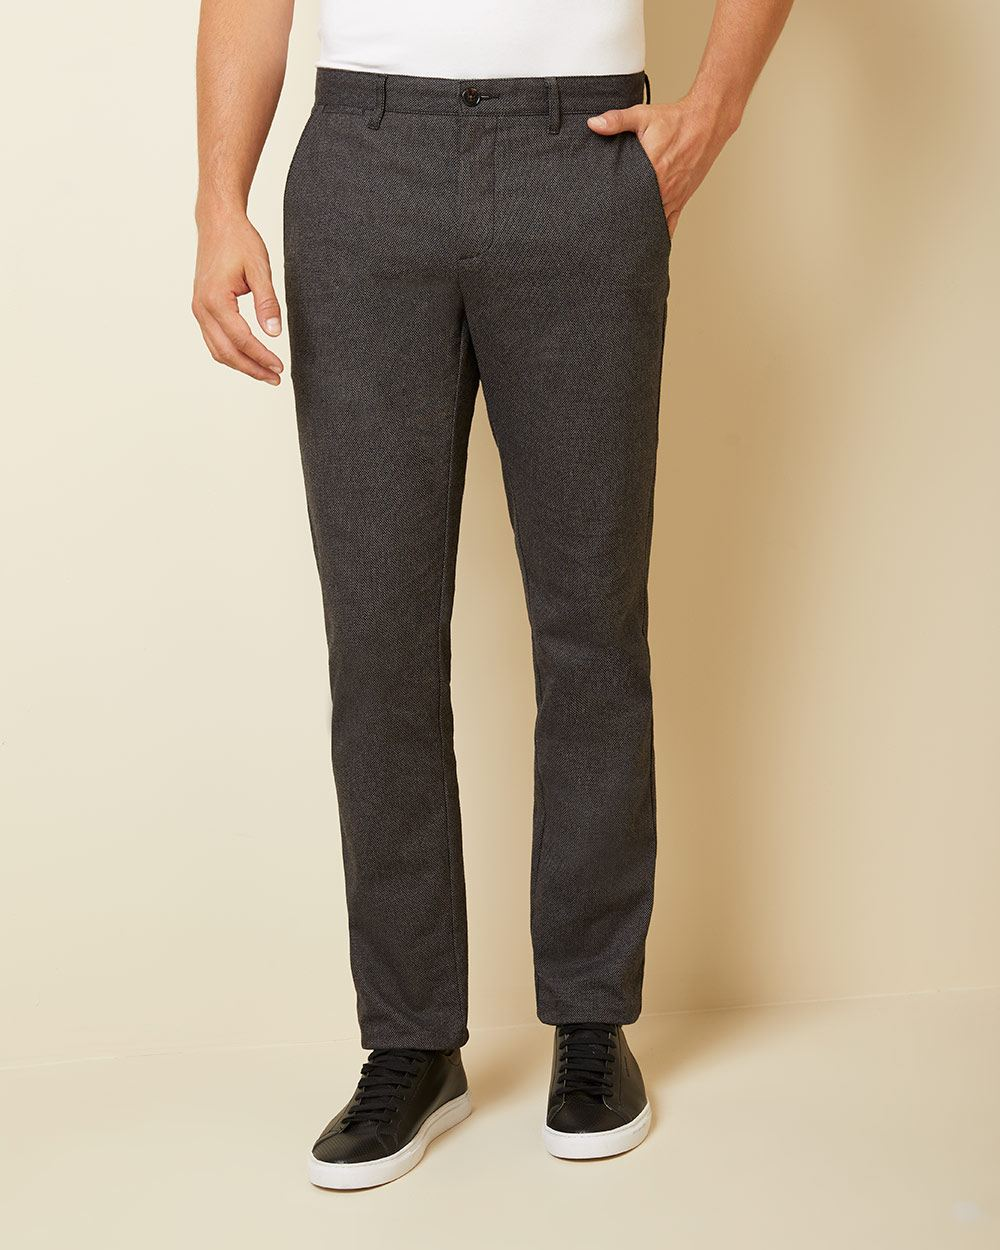 Slim fit slash pocket textured brushed twill pant